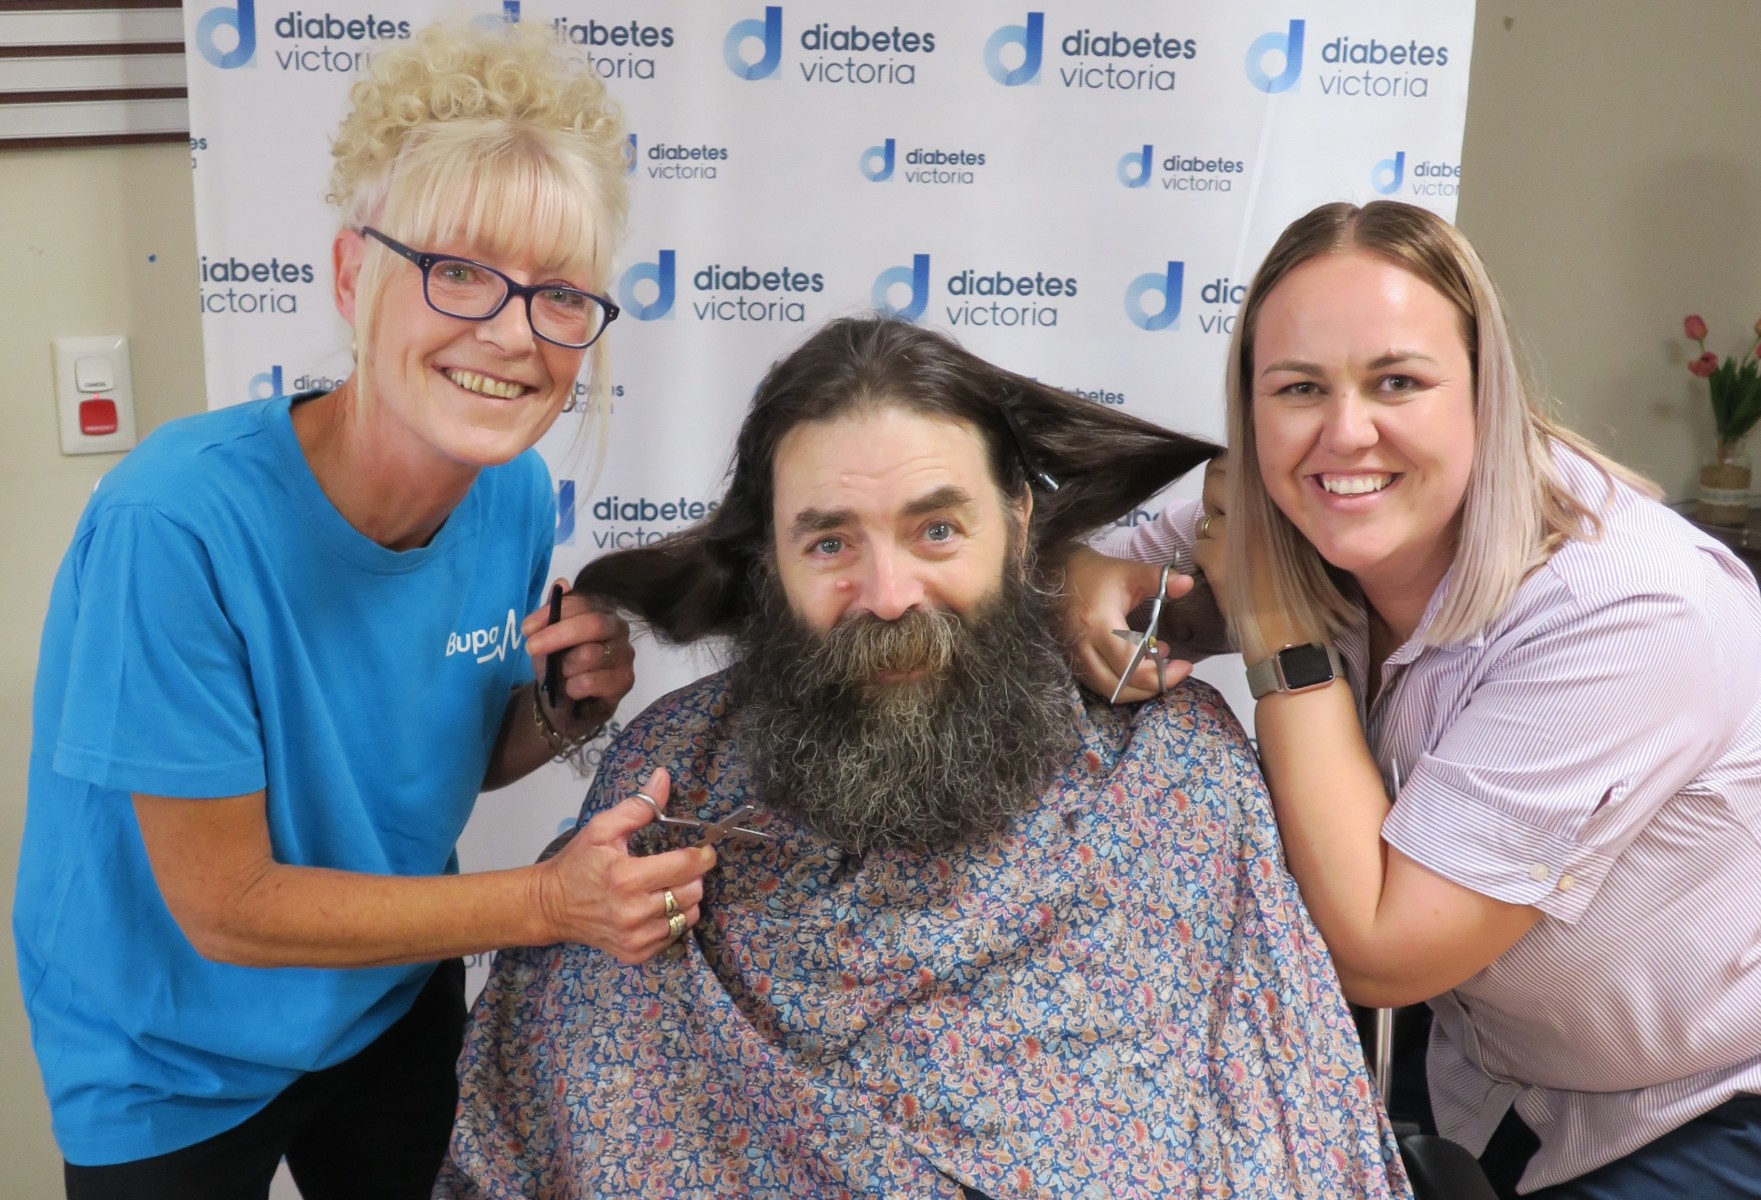 Rodger's Shave for Diabetes Victoria